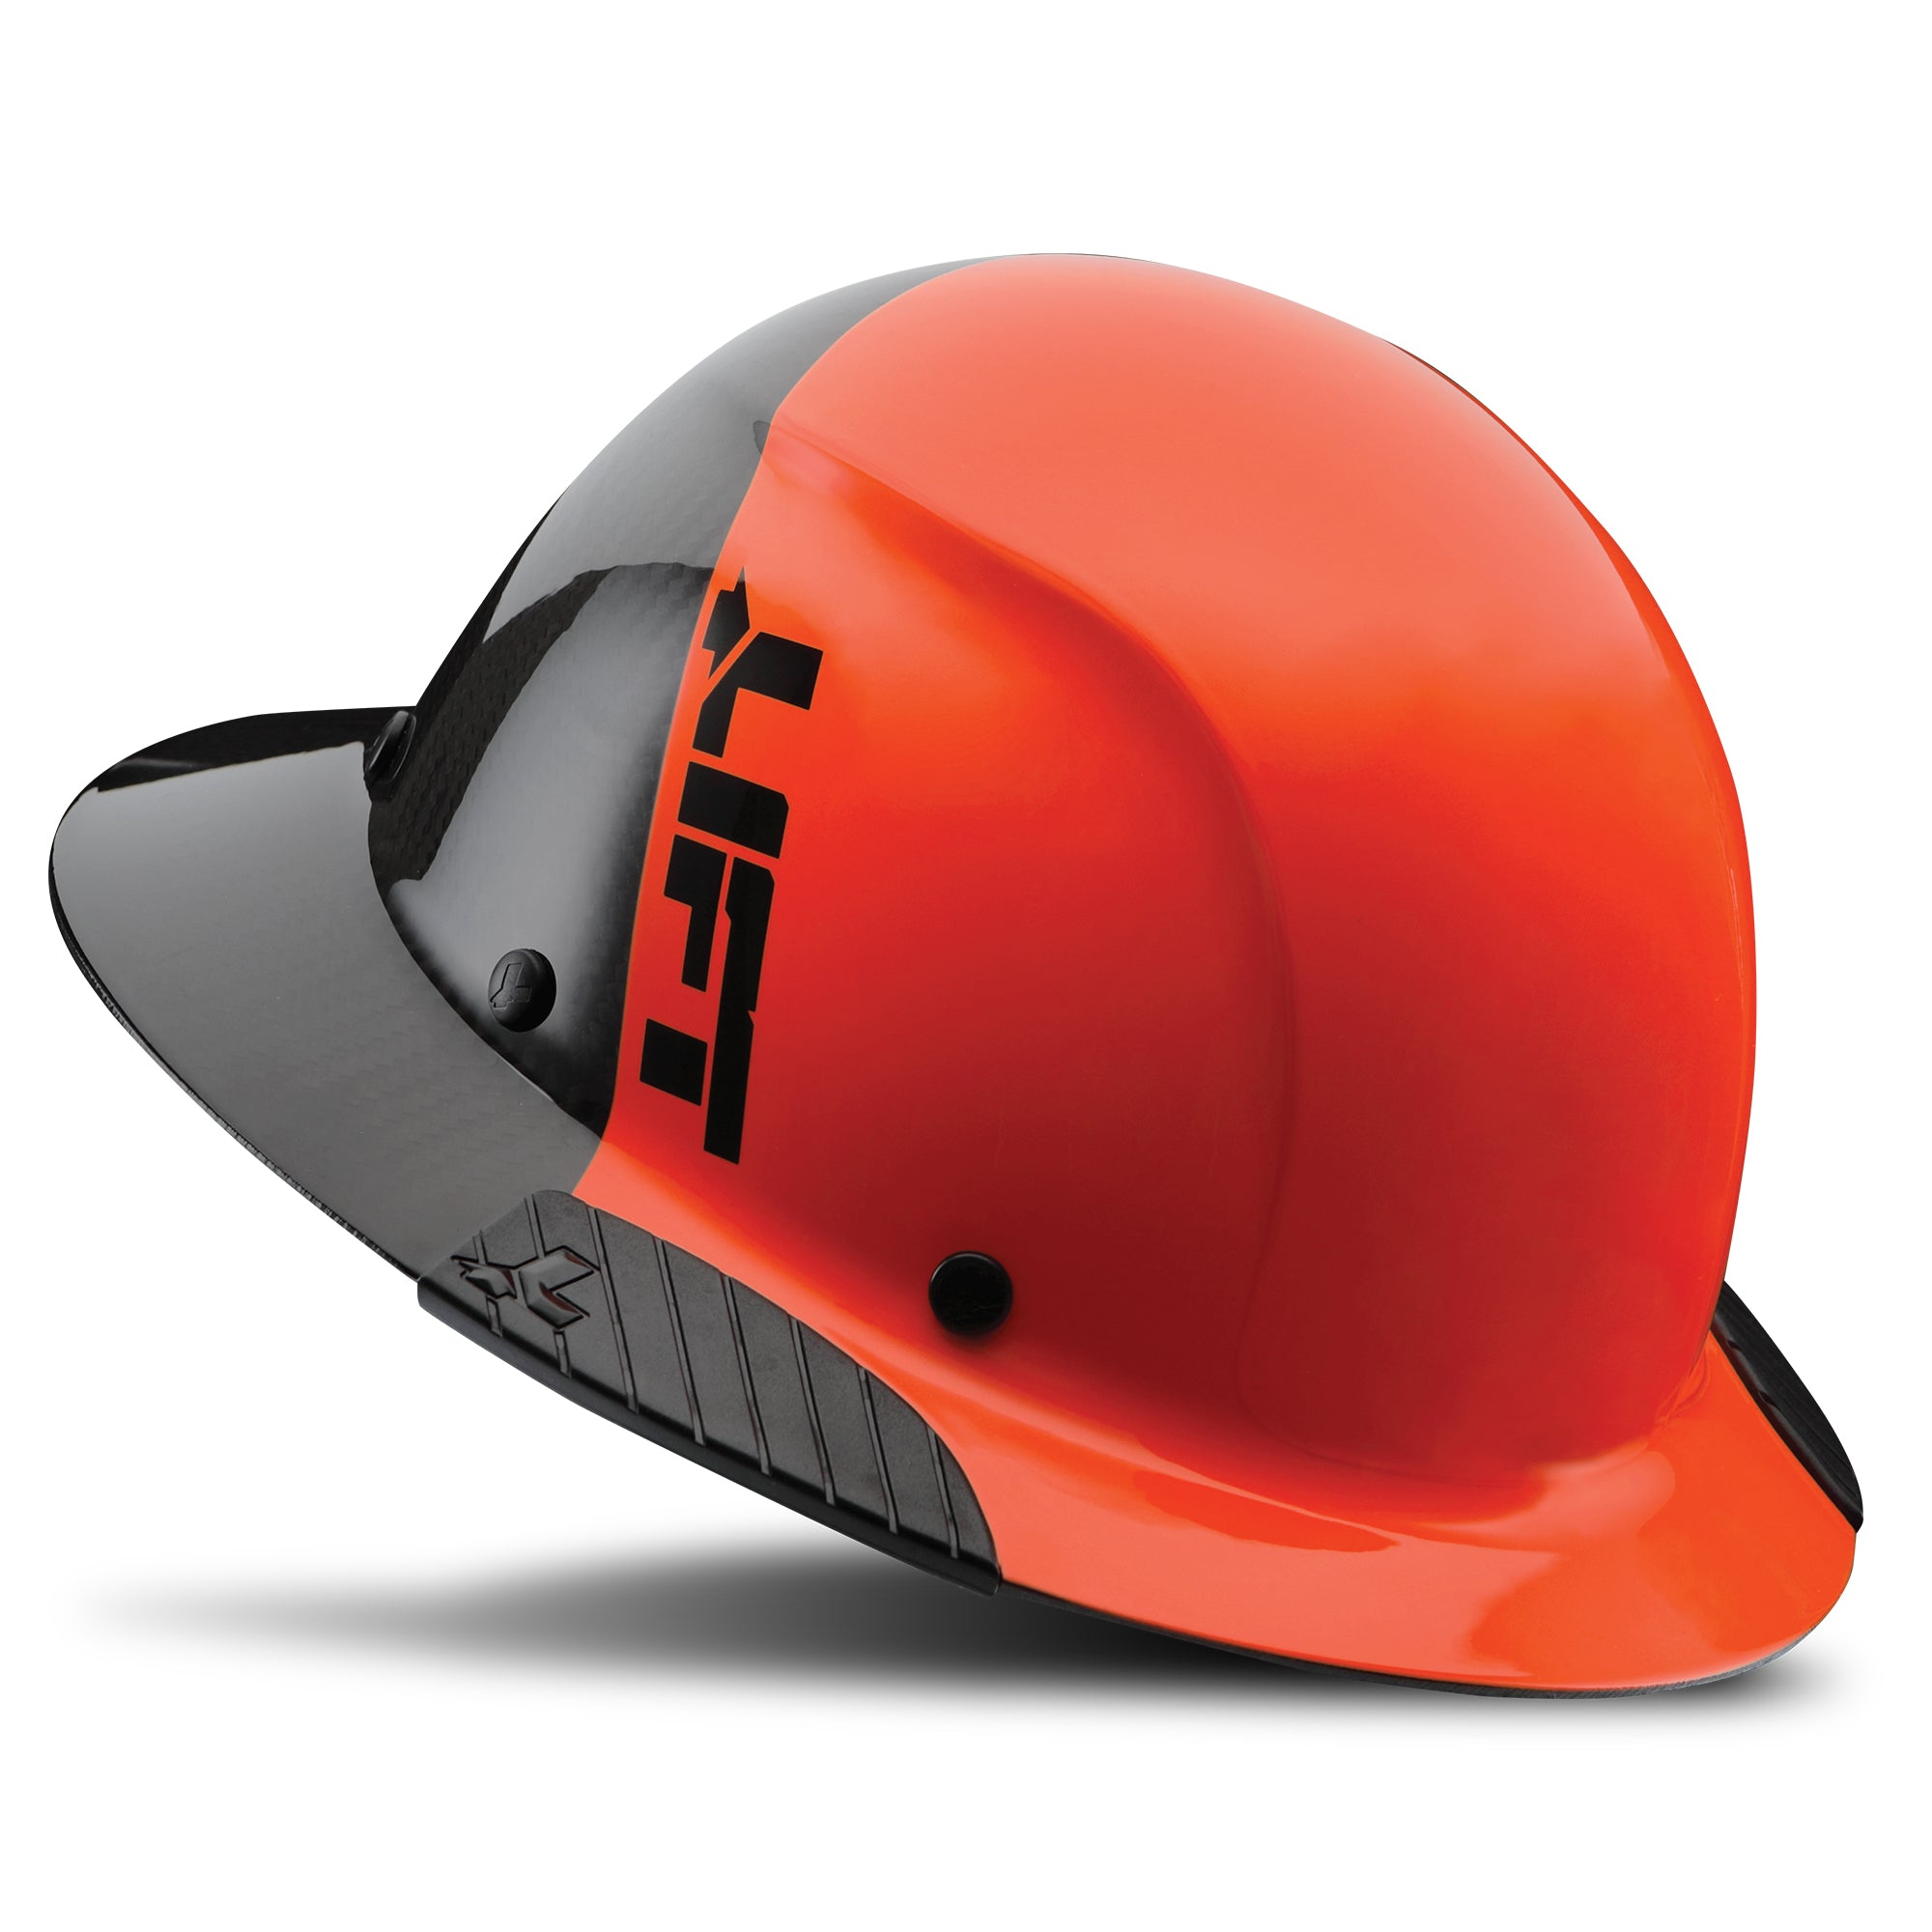 5e61397b143 LIFT Safety - DAX Fifty 50 Carbon Fiber lt br gt Full Brim Hardhat ...